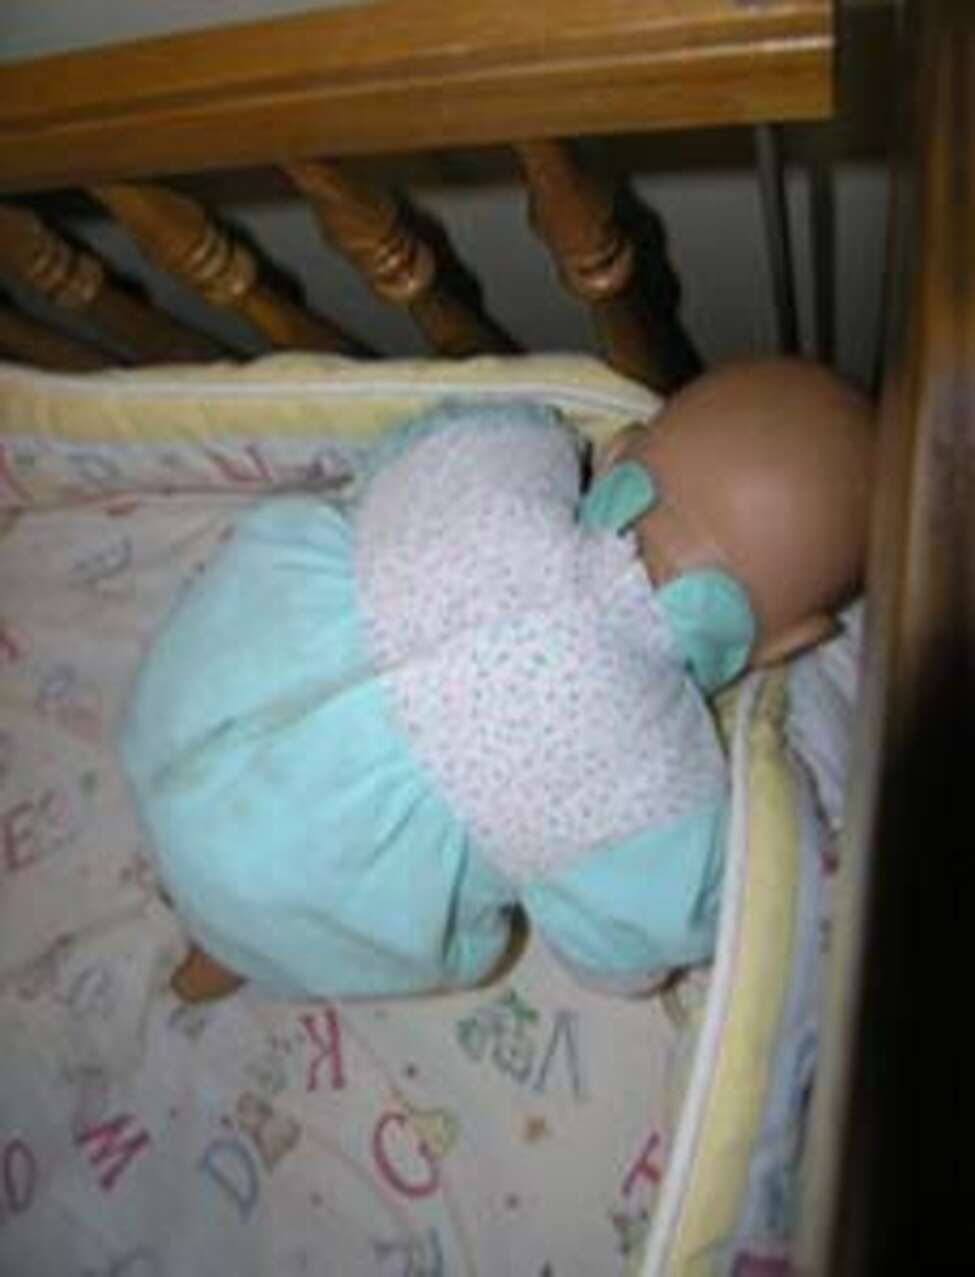 Lawmakers and pediatricians are working to pass a bill banning the sale of crib bumper pads in New York following recommendations from child safety groups who say they are unsafe for babies.